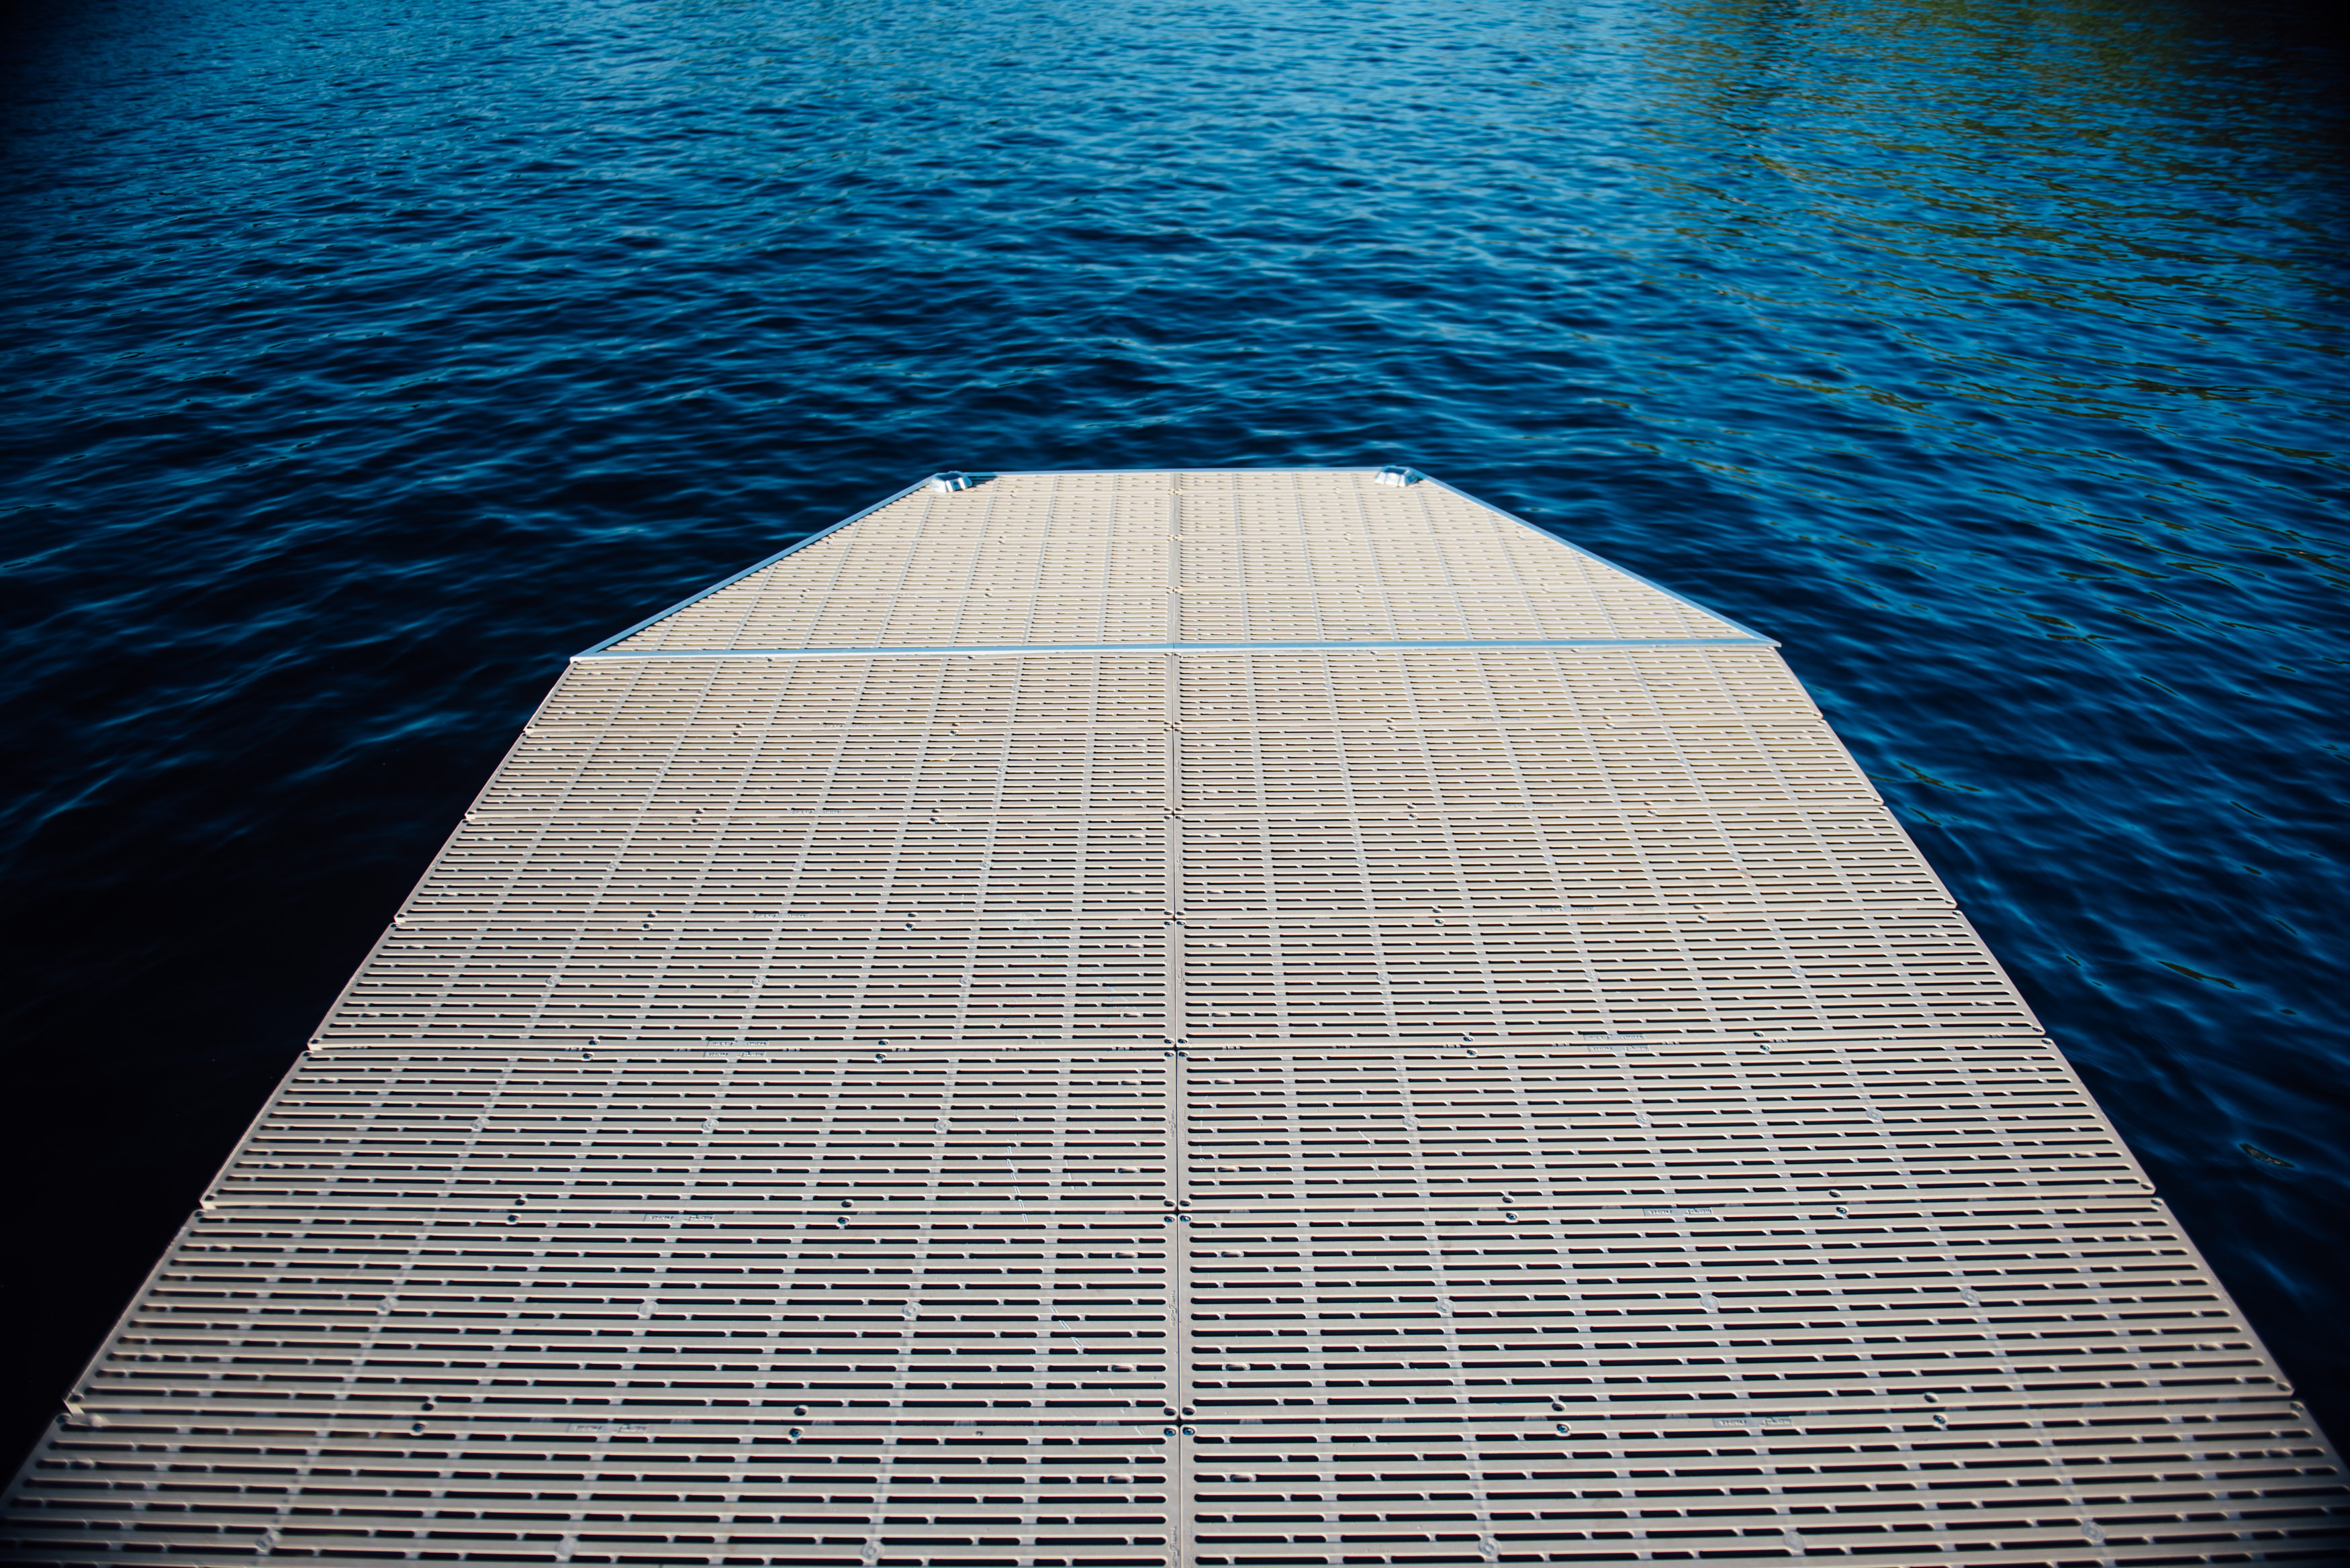 Hextension added to a 4x8 floating dock section